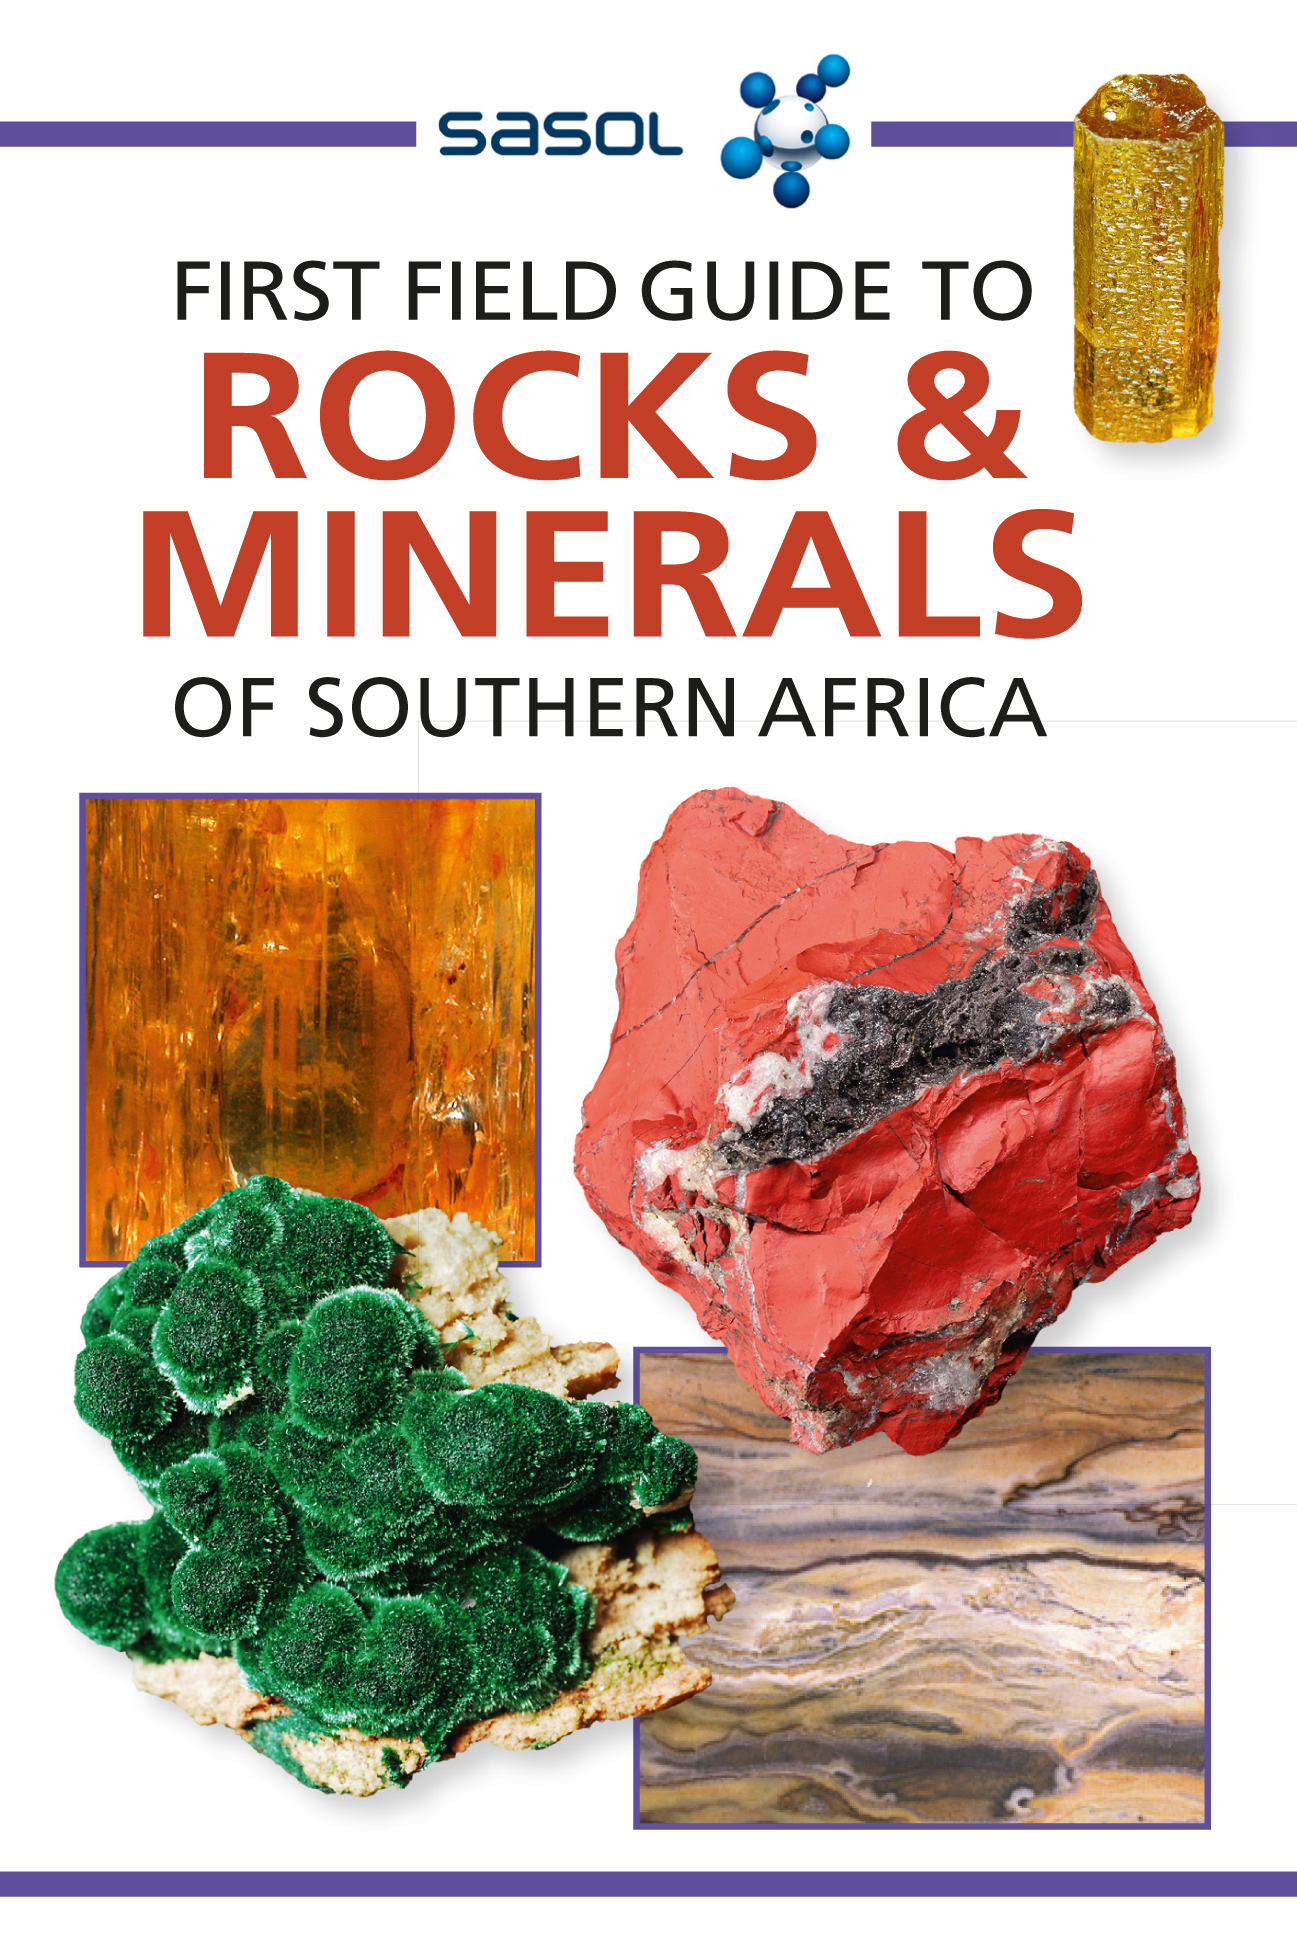 First Field Guide to Rocks & Minerals of Southern Africa